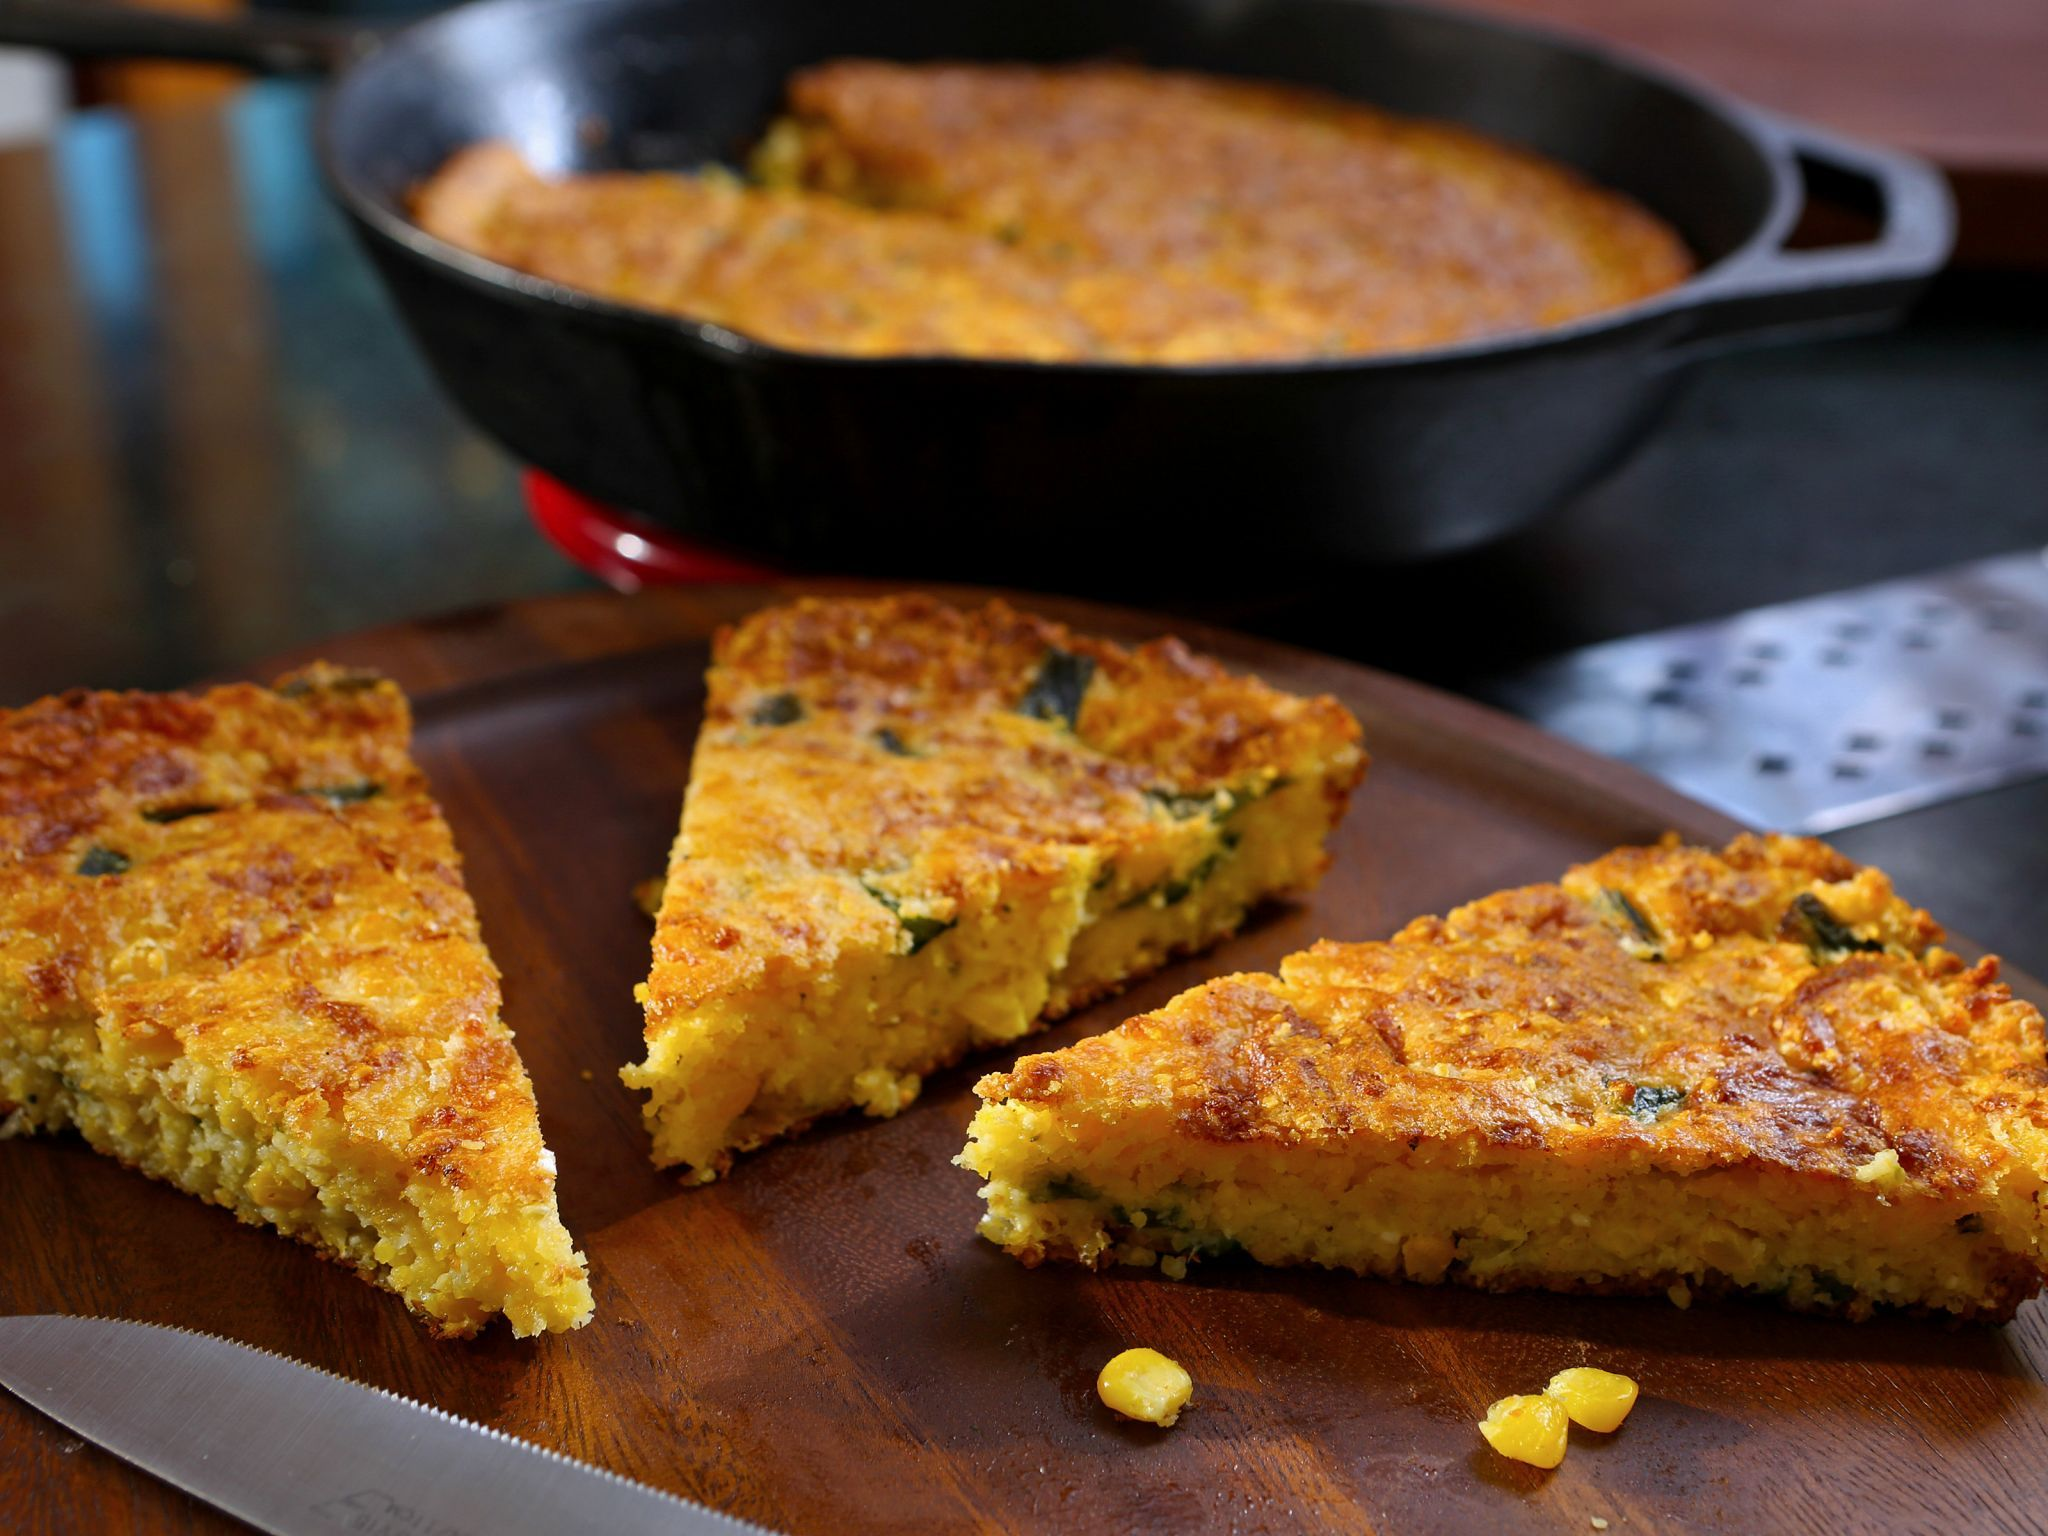 Discussion on this topic: Pepper-Jack Cornbread Sticks, pepper-jack-cornbread-sticks/